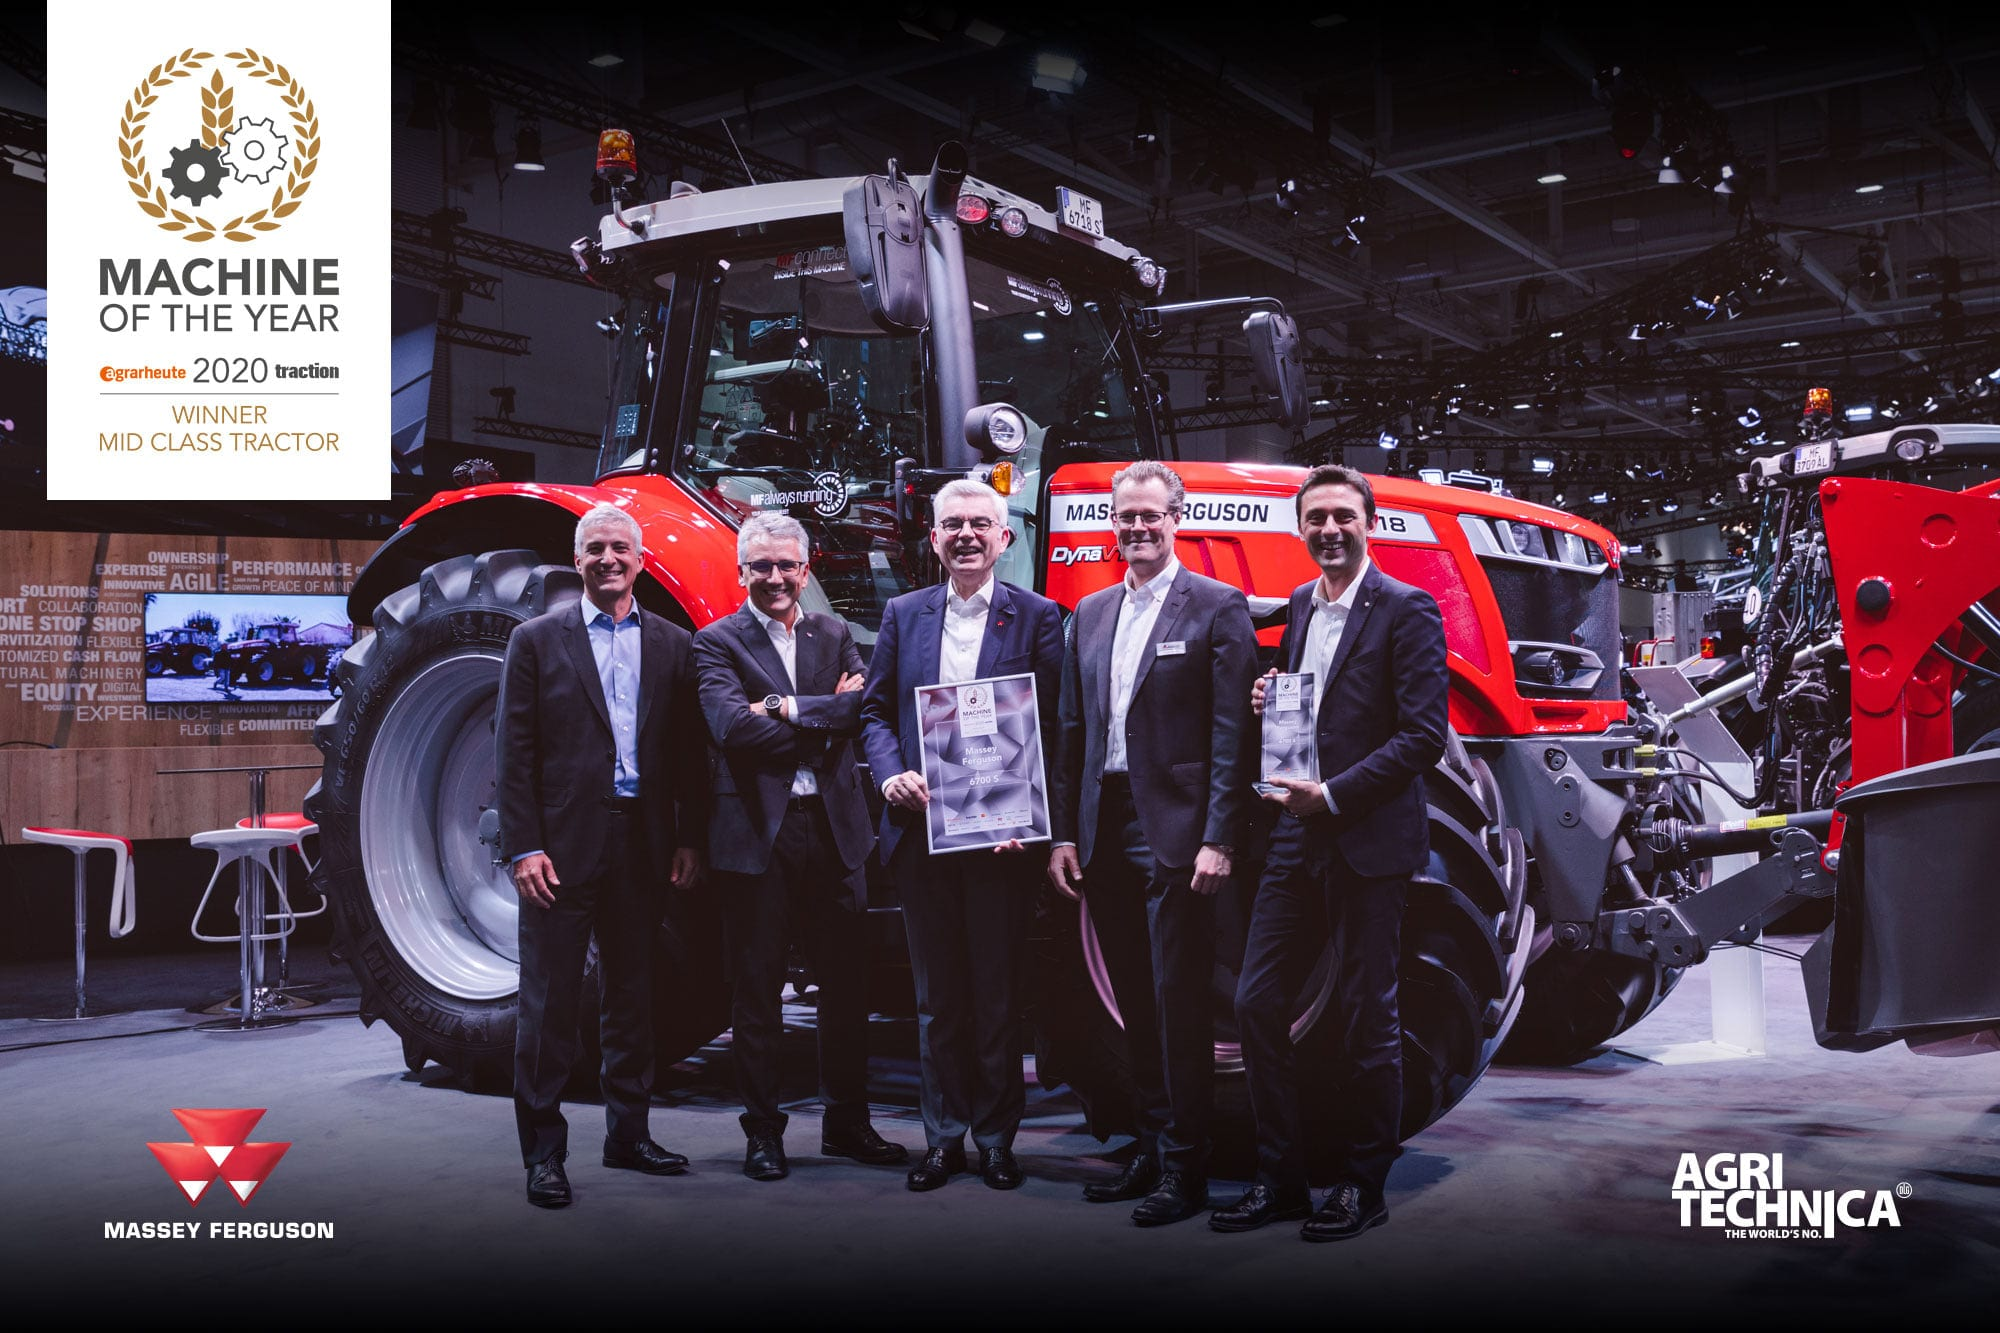 MF 6700 S awarded Machine of the Year 2020